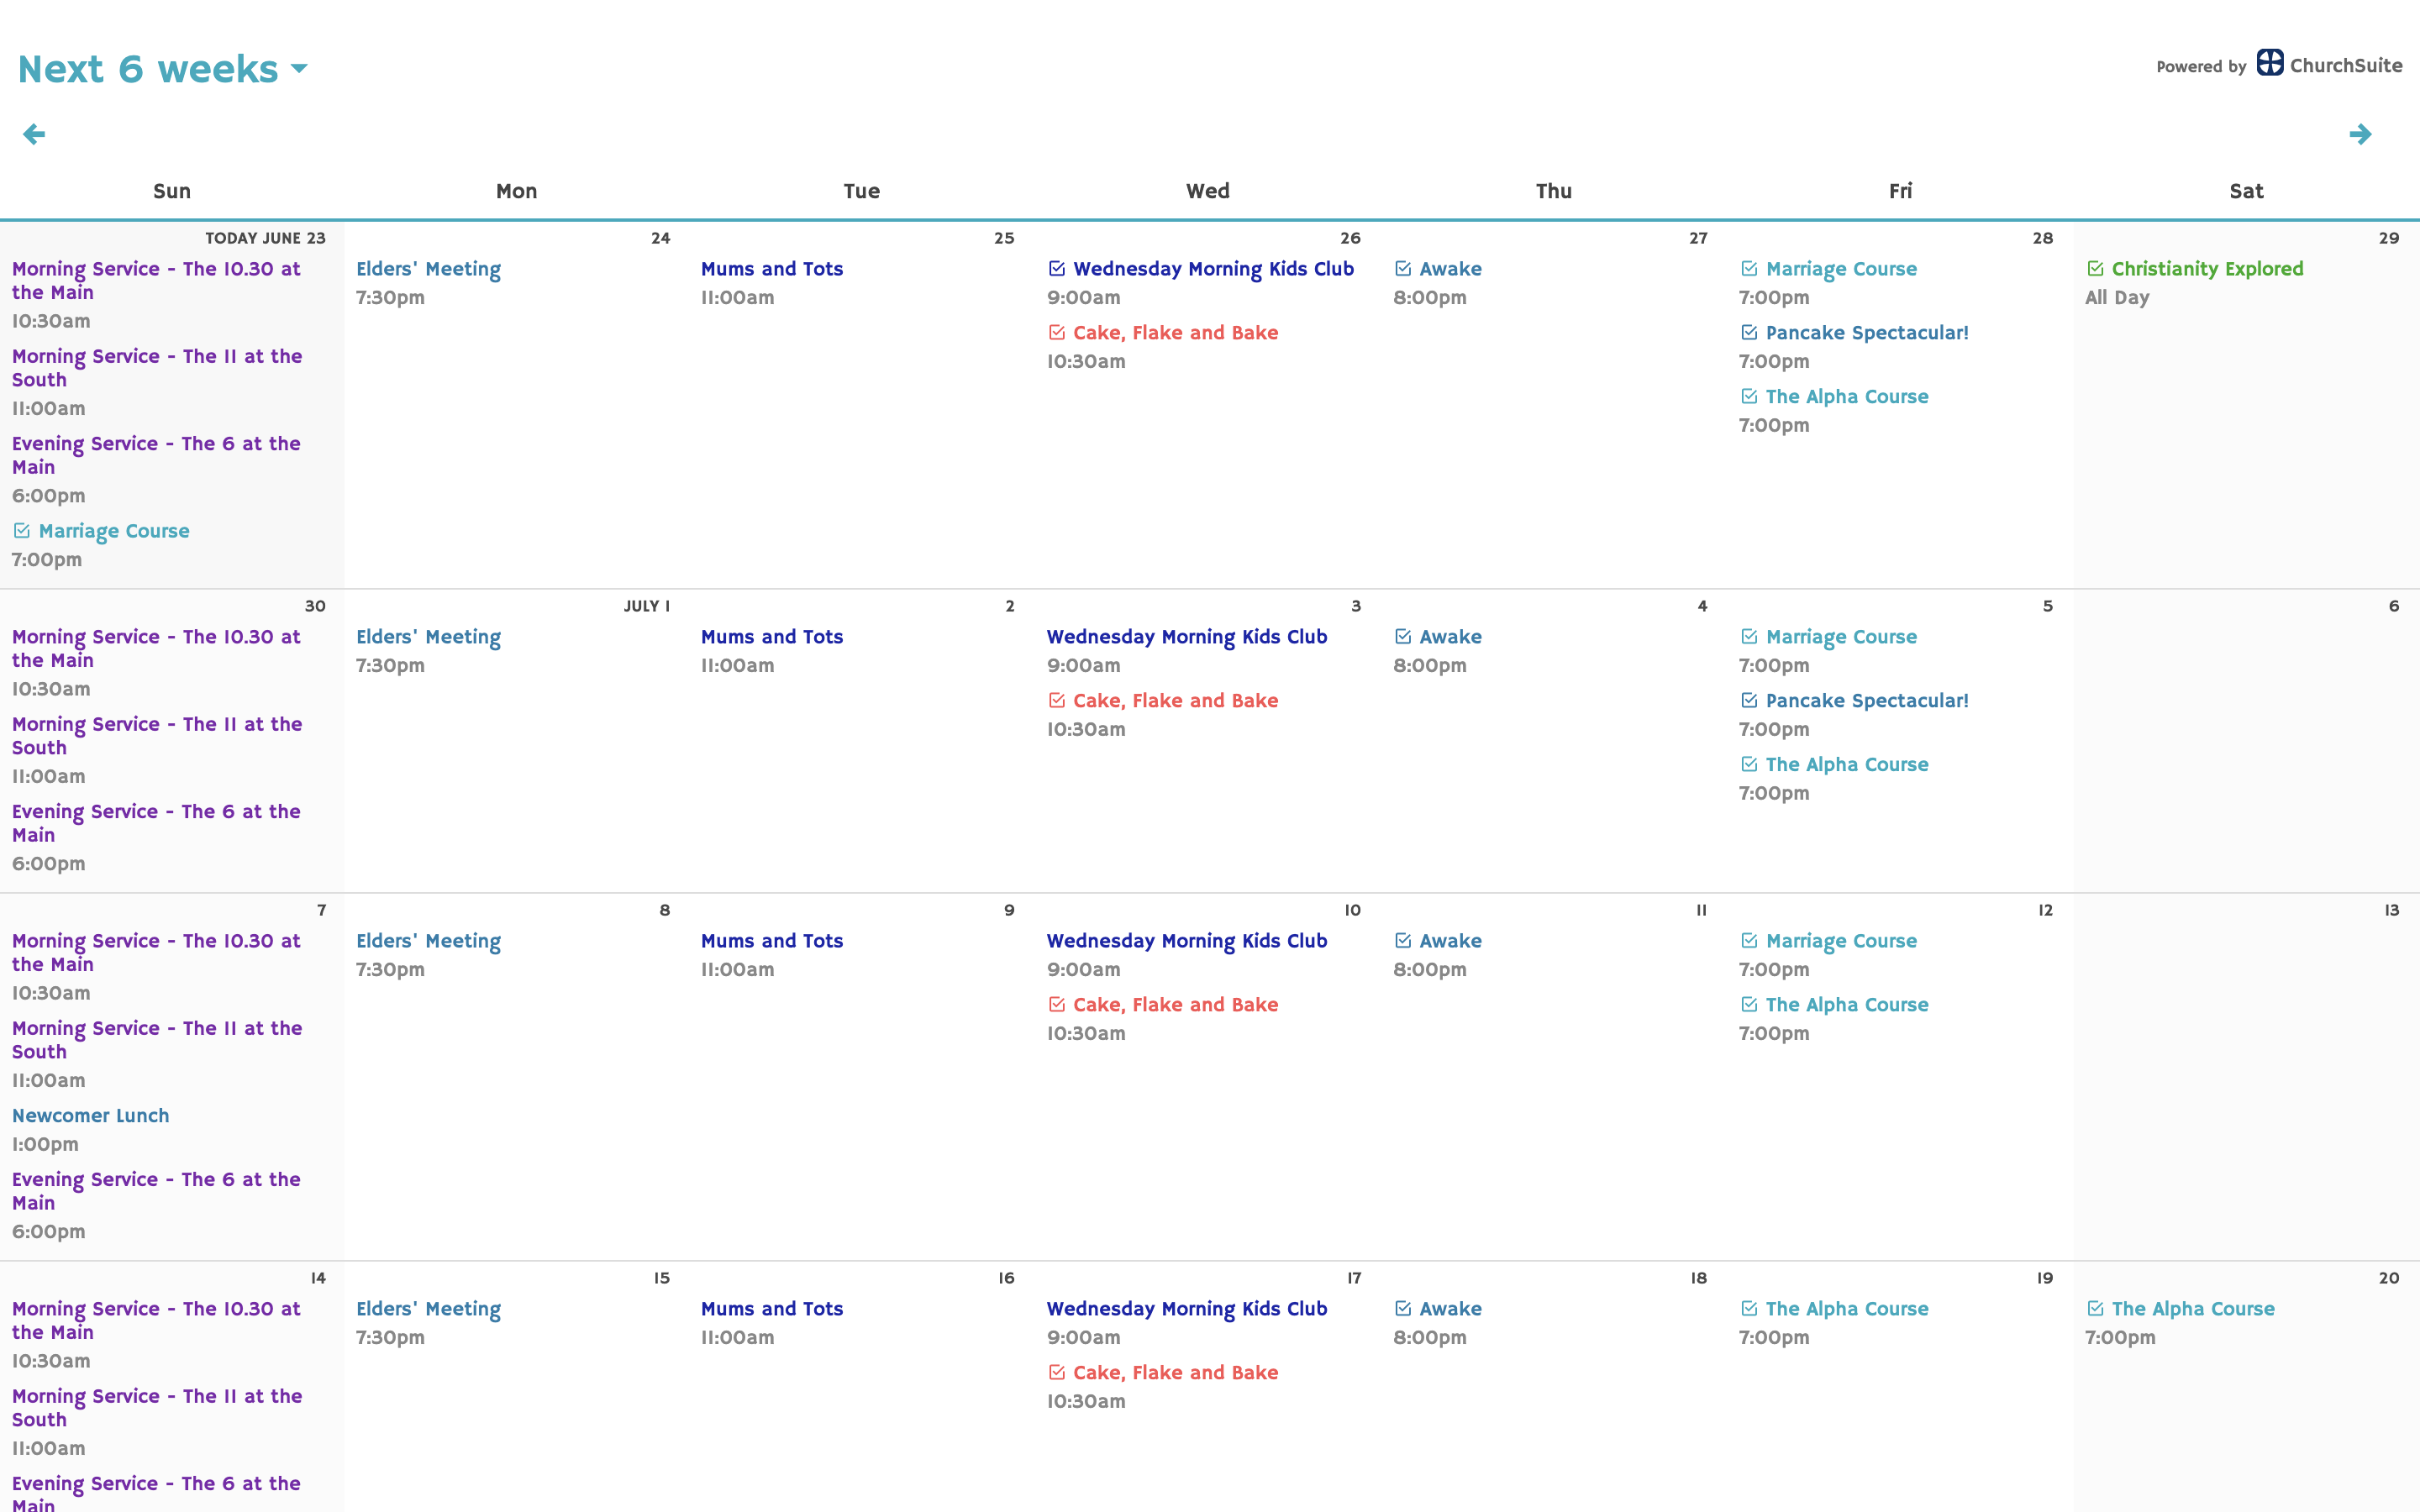 Embed your ChurchSuite calendar in your website